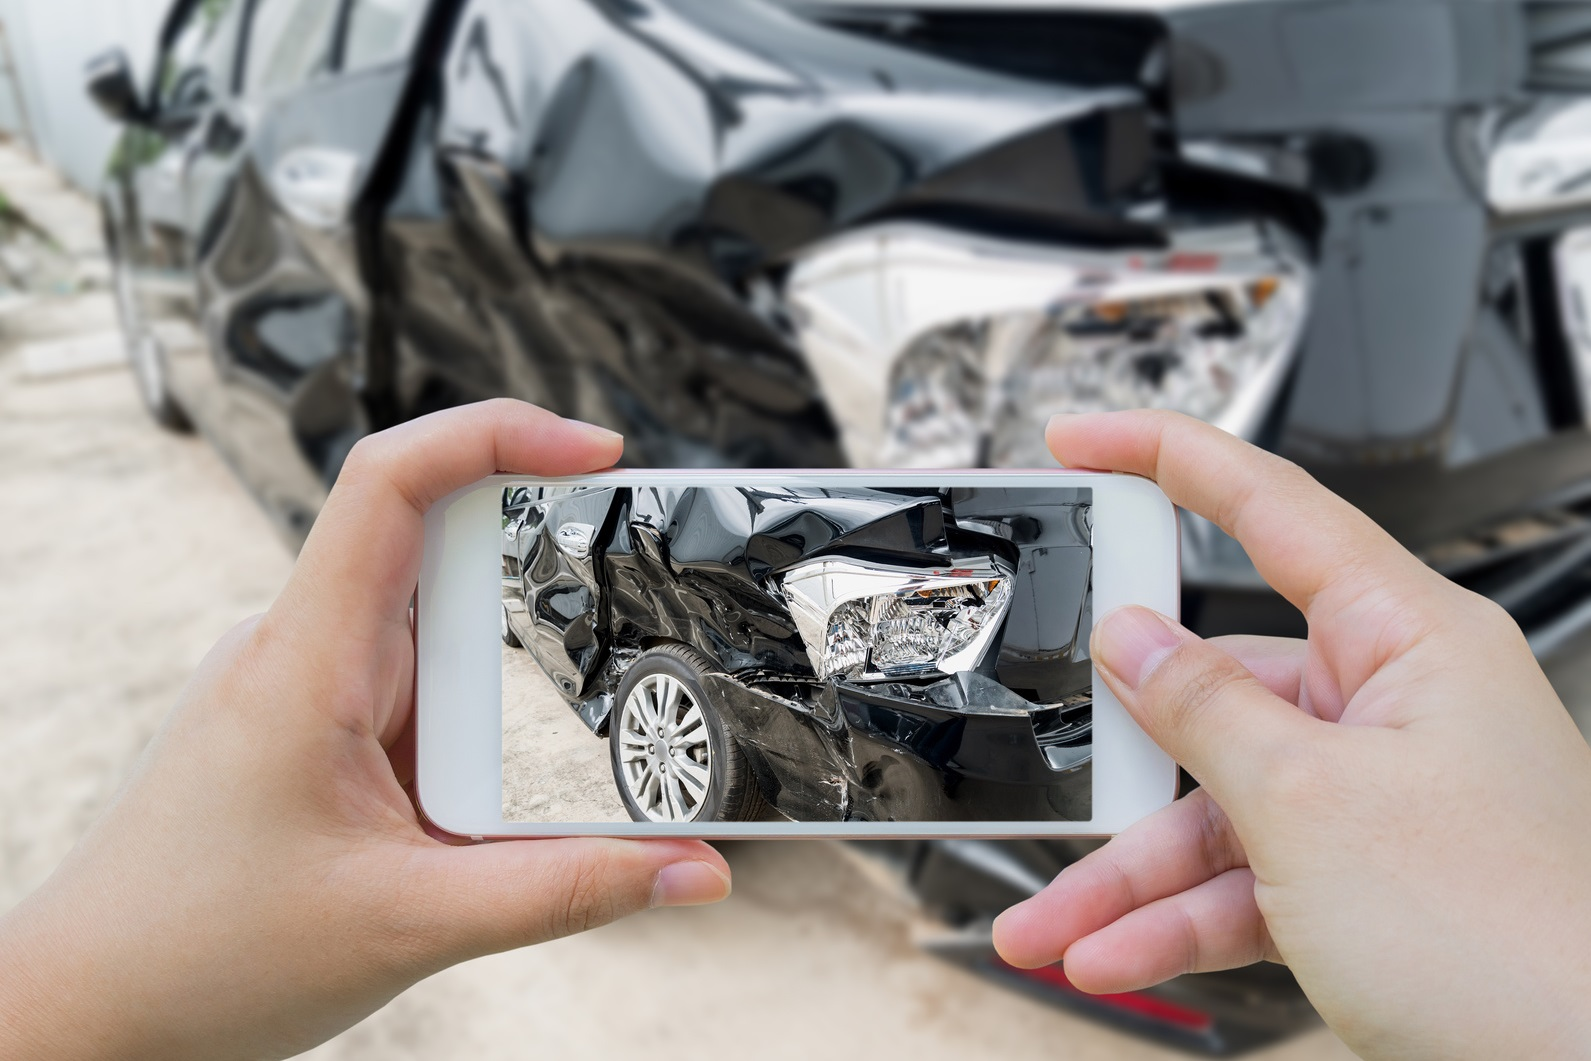 Car crash accident damaged with hand using smartphone taking photo